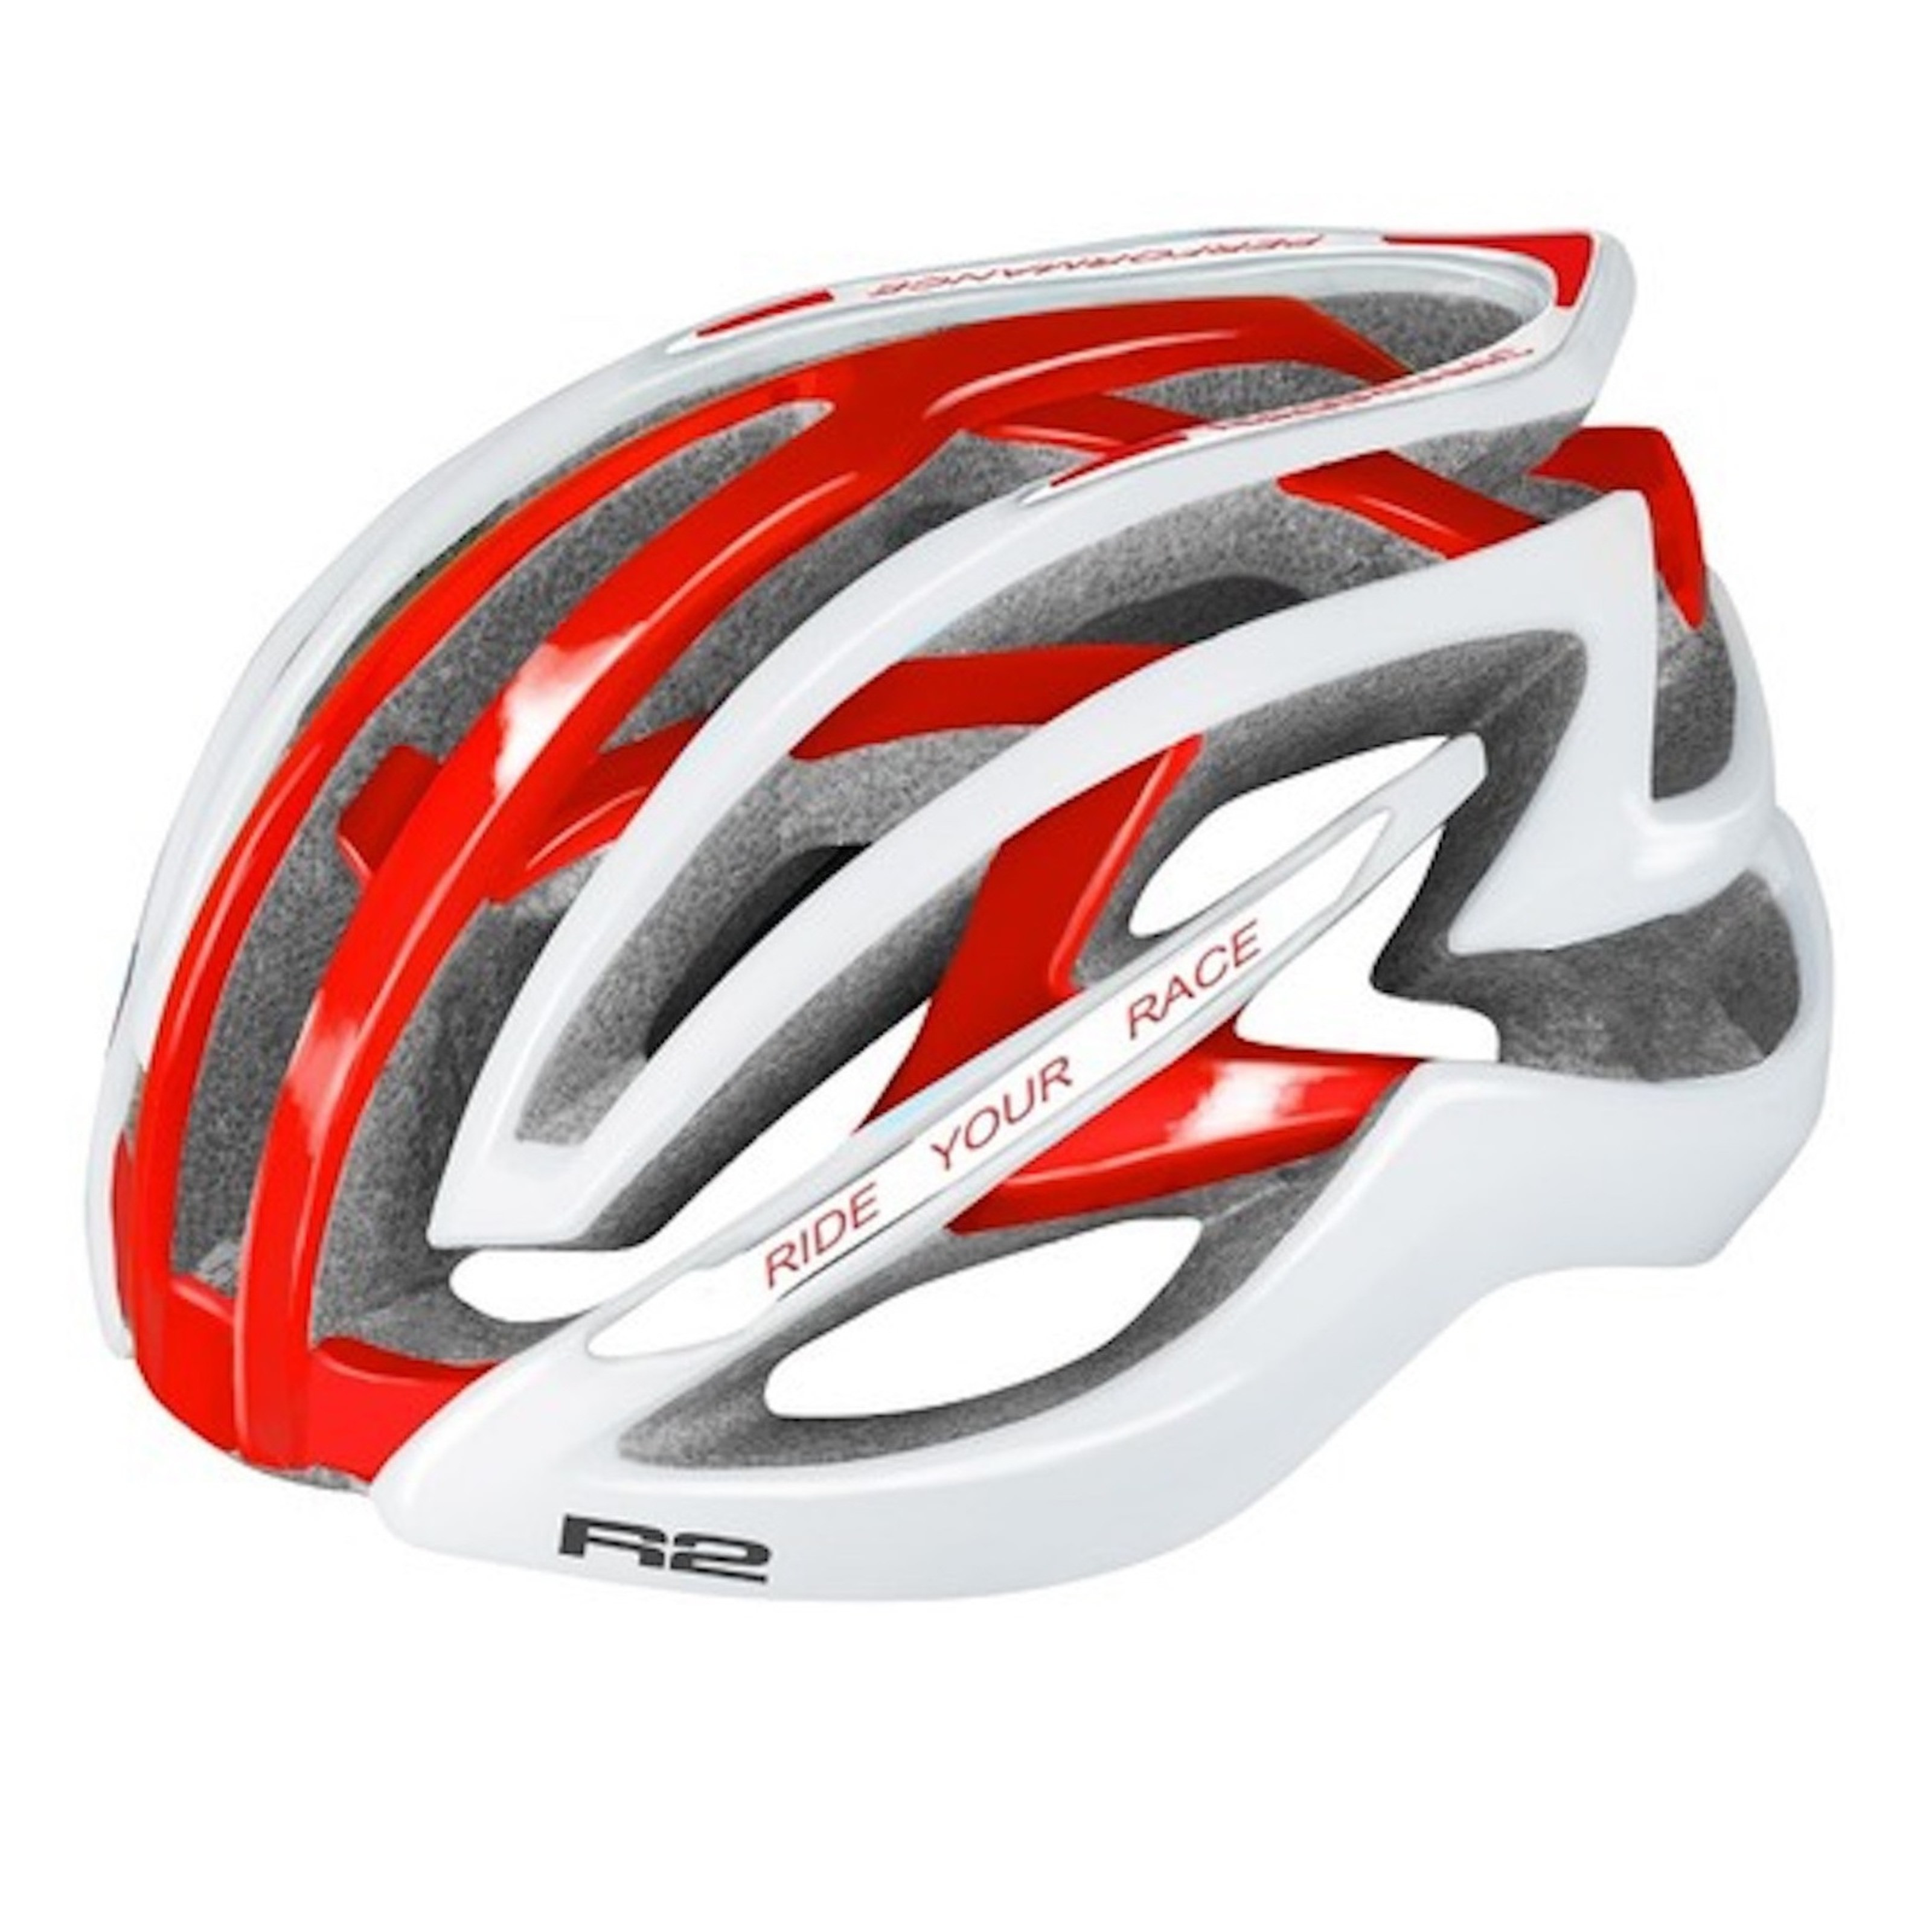 R2 EVOLUTION - Road Helmet / White, Red Glossy